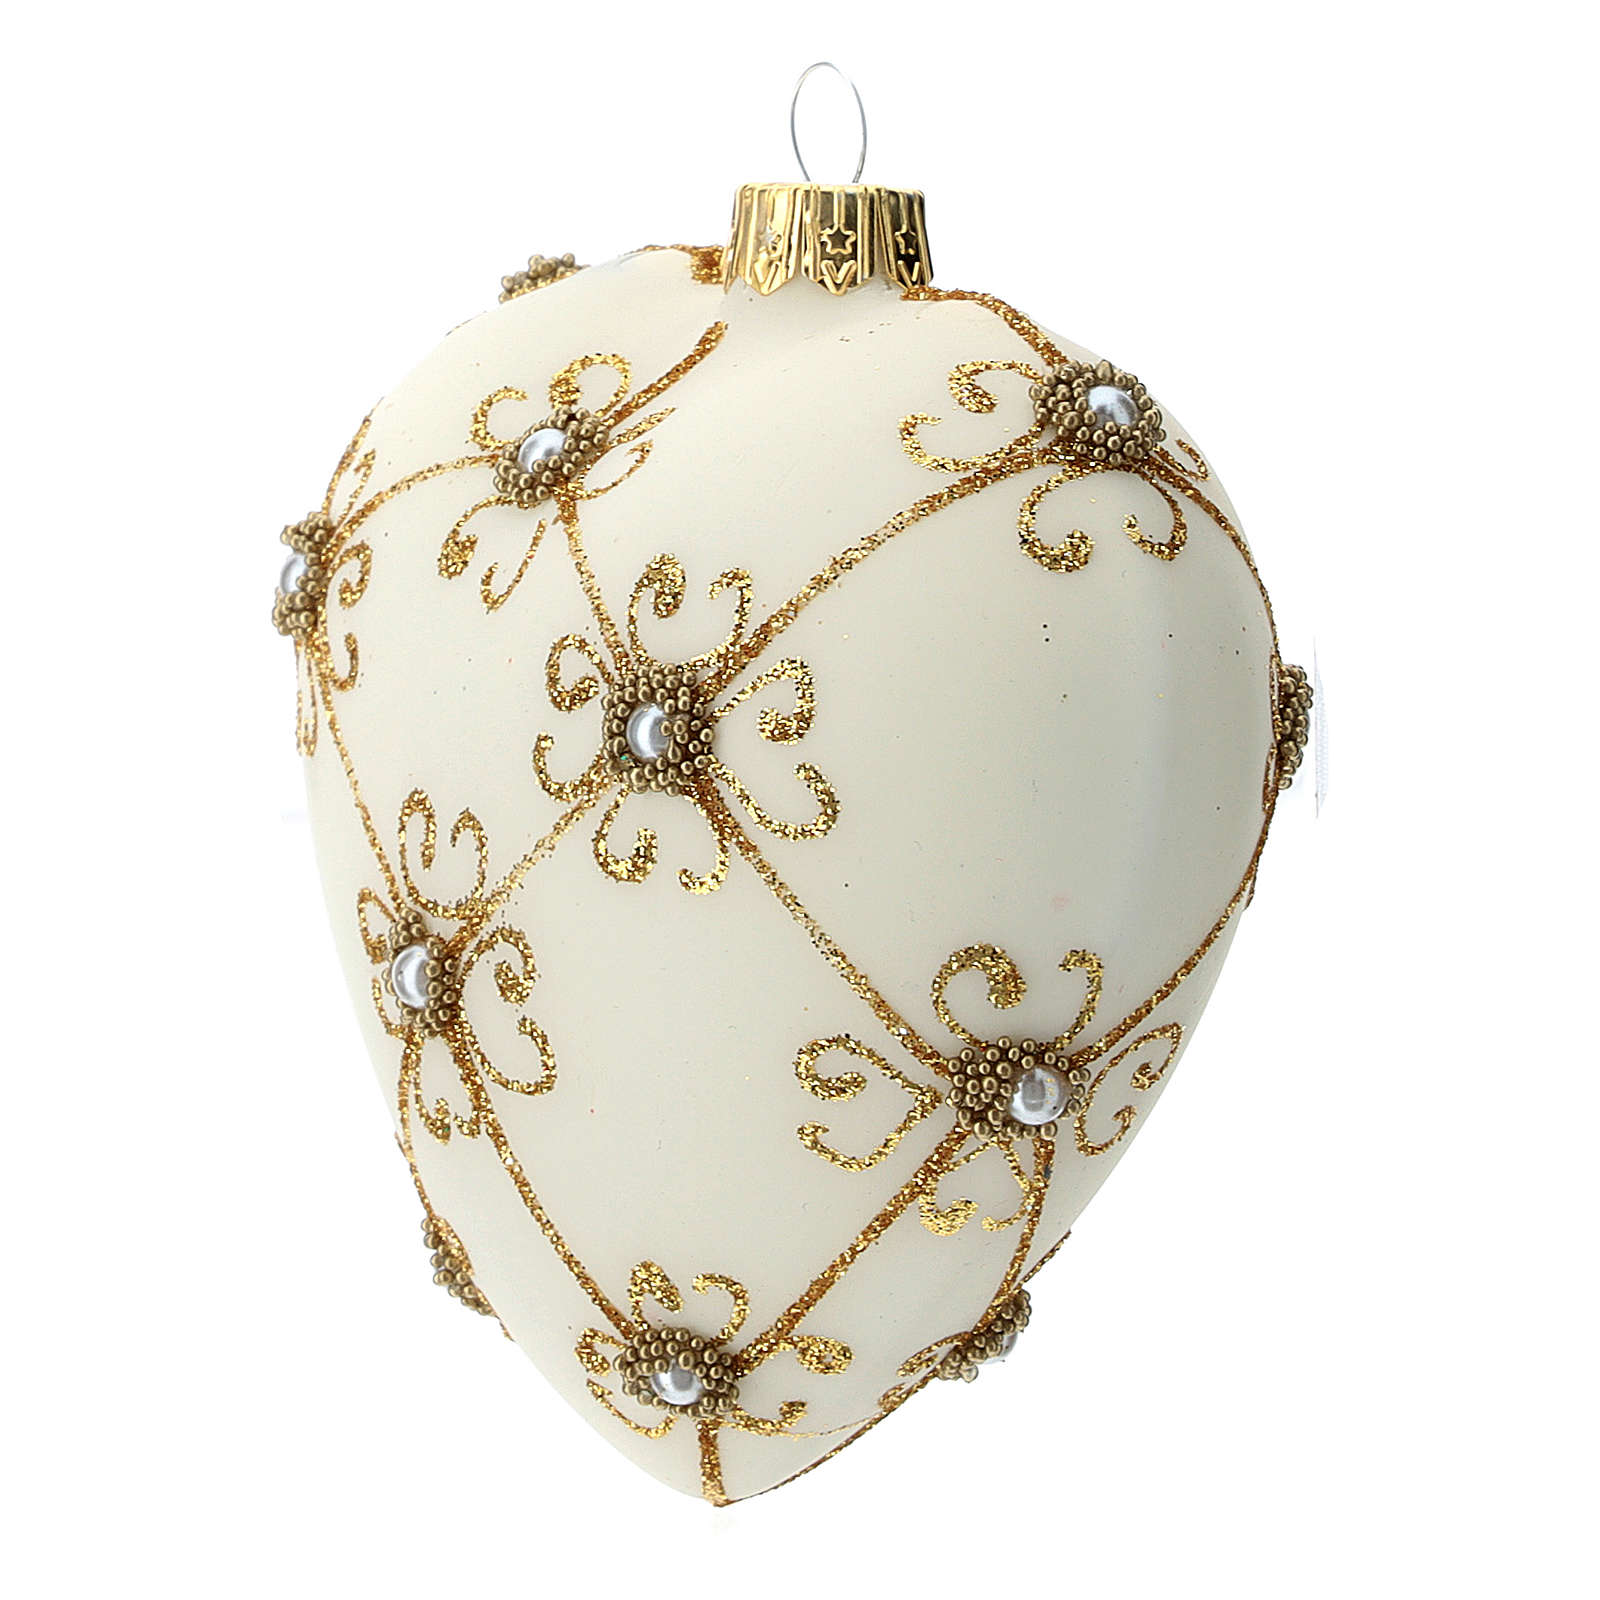 Heart Shaped Christmas bauble in blown glass with ivory and gold decorations 100mm 4